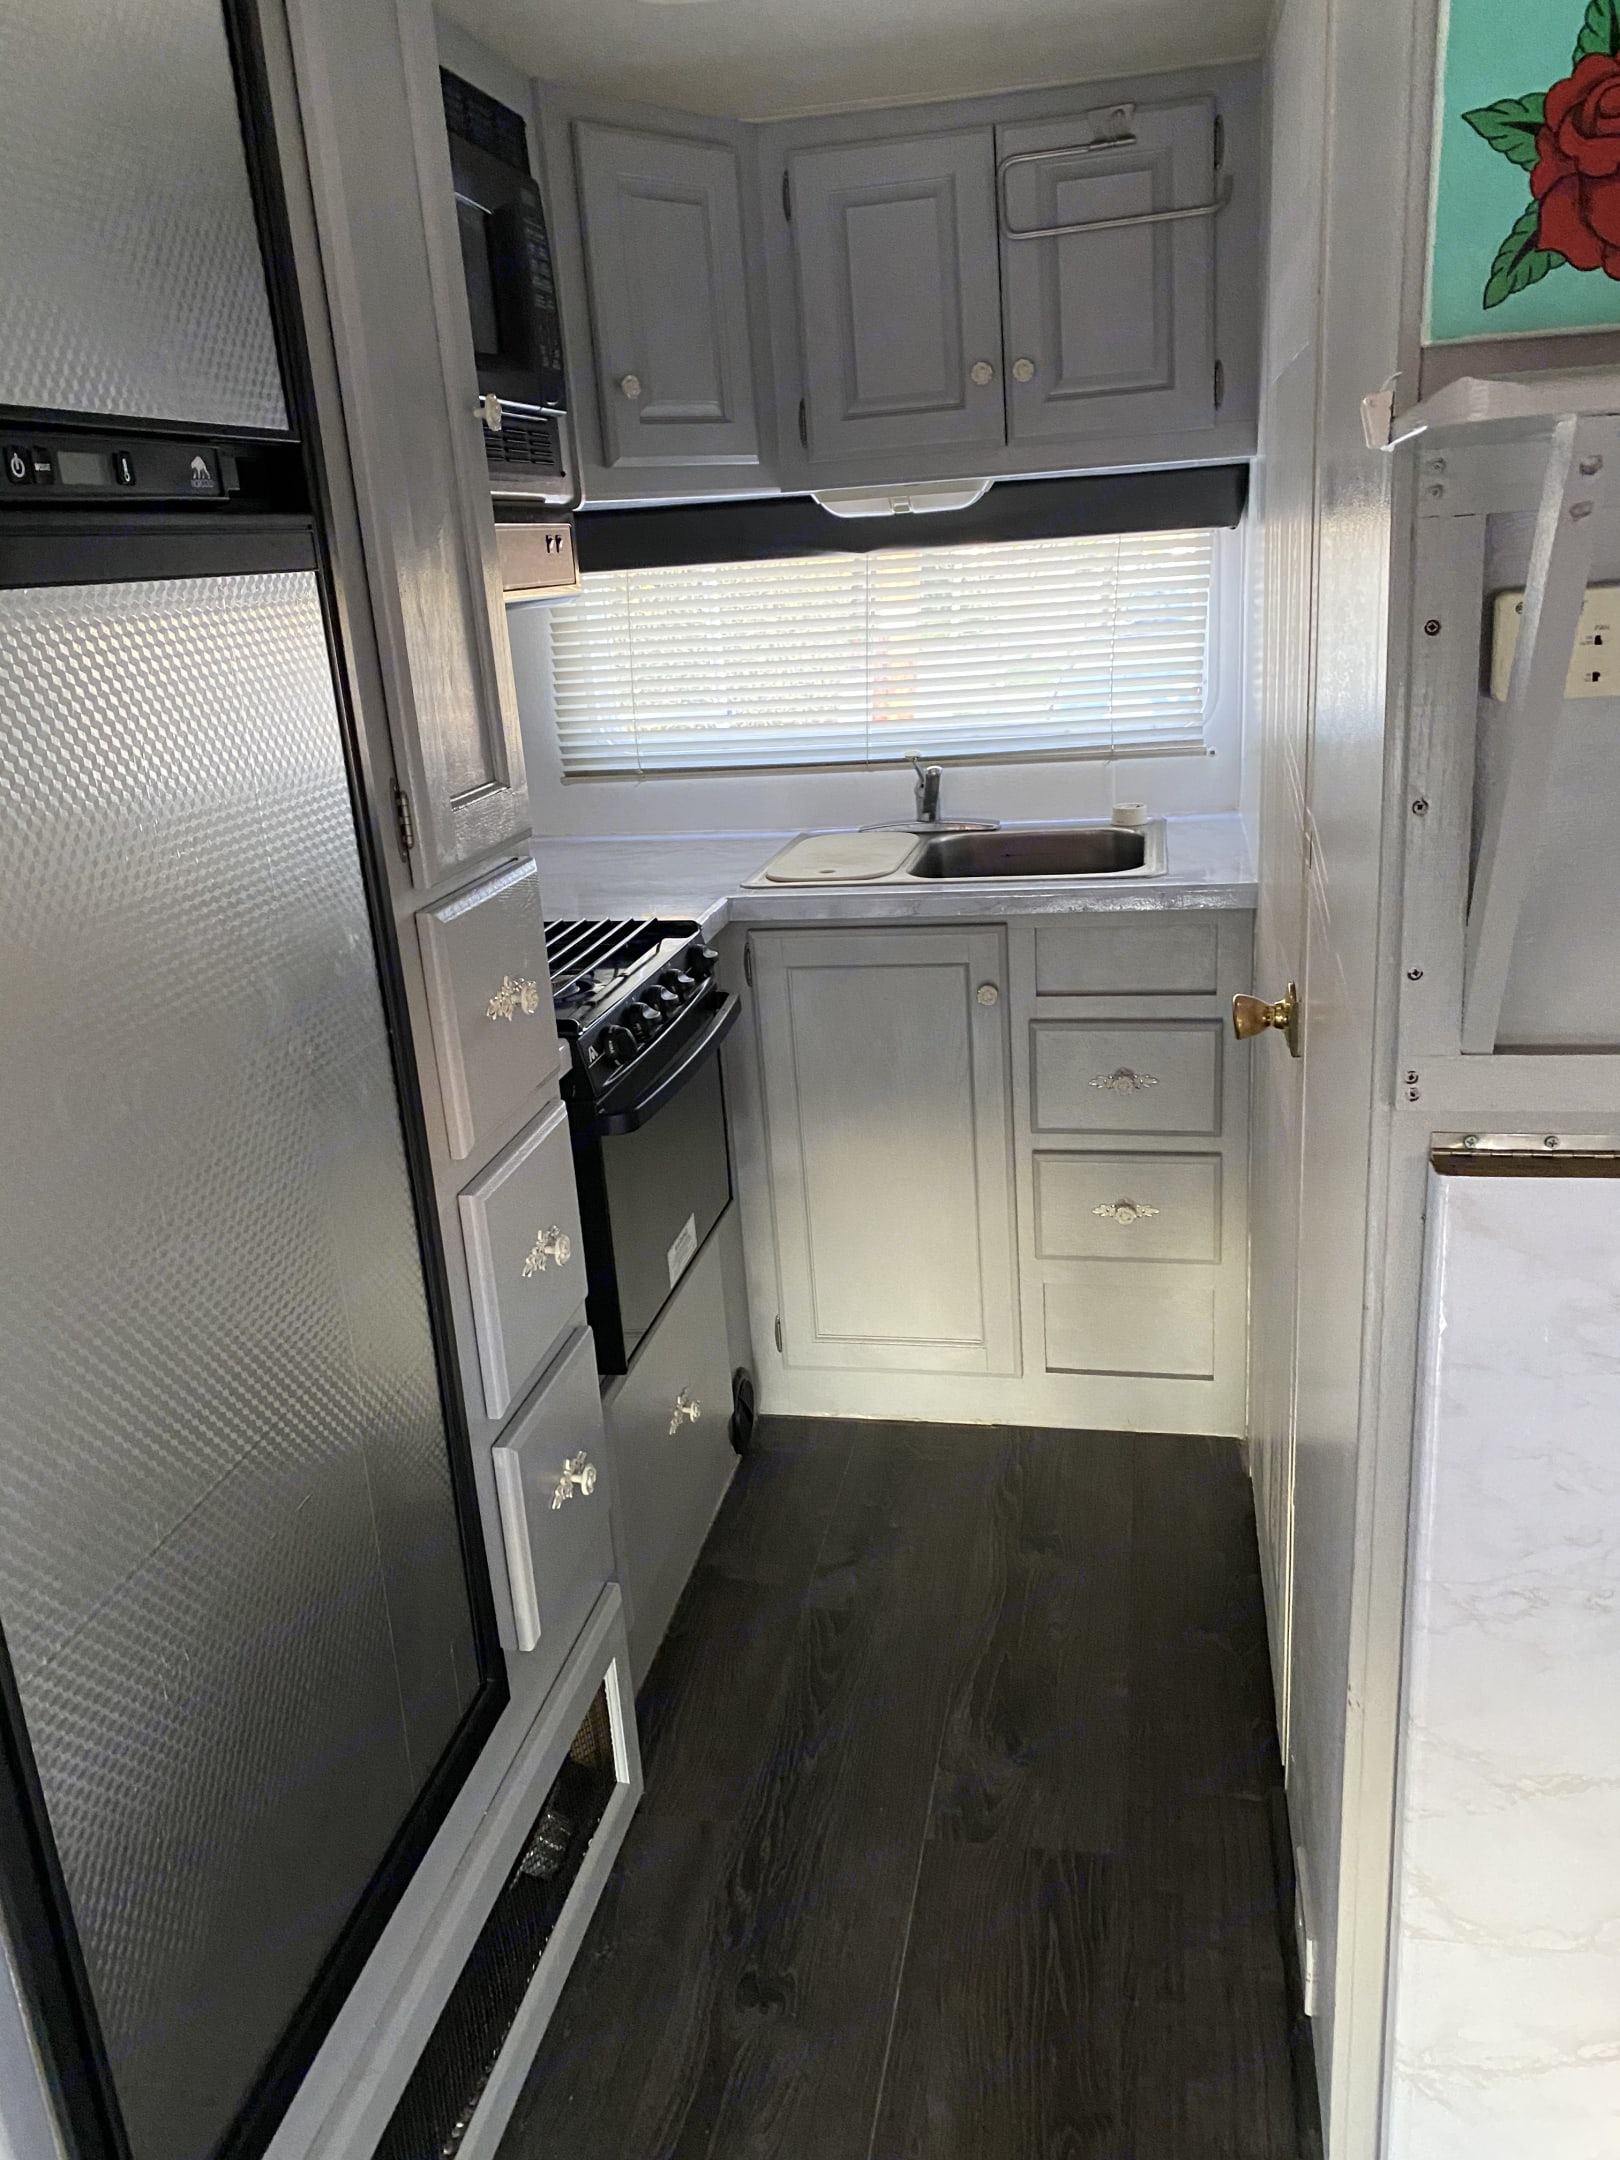 Fully-Stocked Kitchen. With stove, microwave and New refrigerator. Holiday Rambler Atlantis 2002